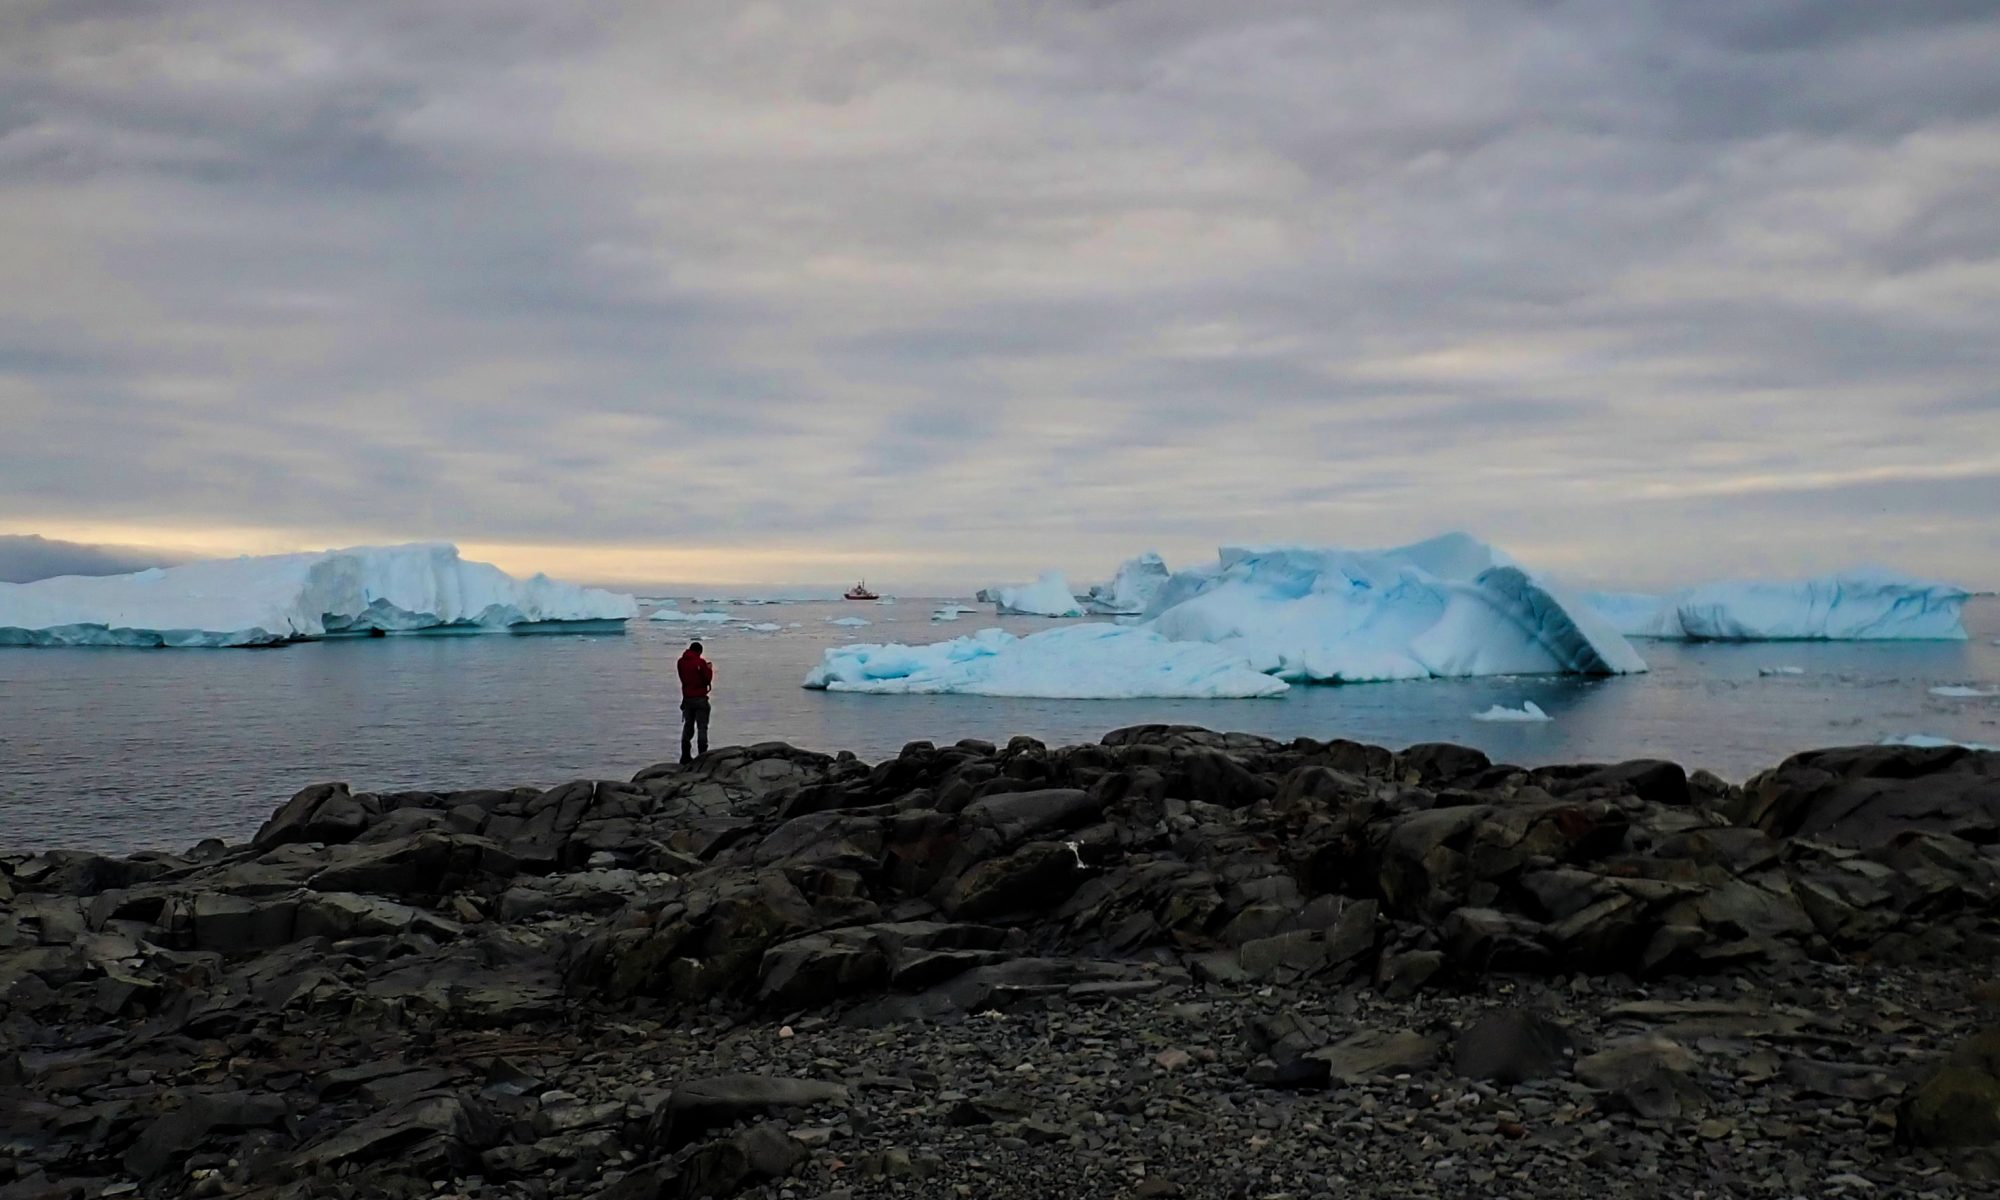 A photo of strikingly blue icebergs floating in the bay, with grey rocks in the foreground and dark, moody skies.